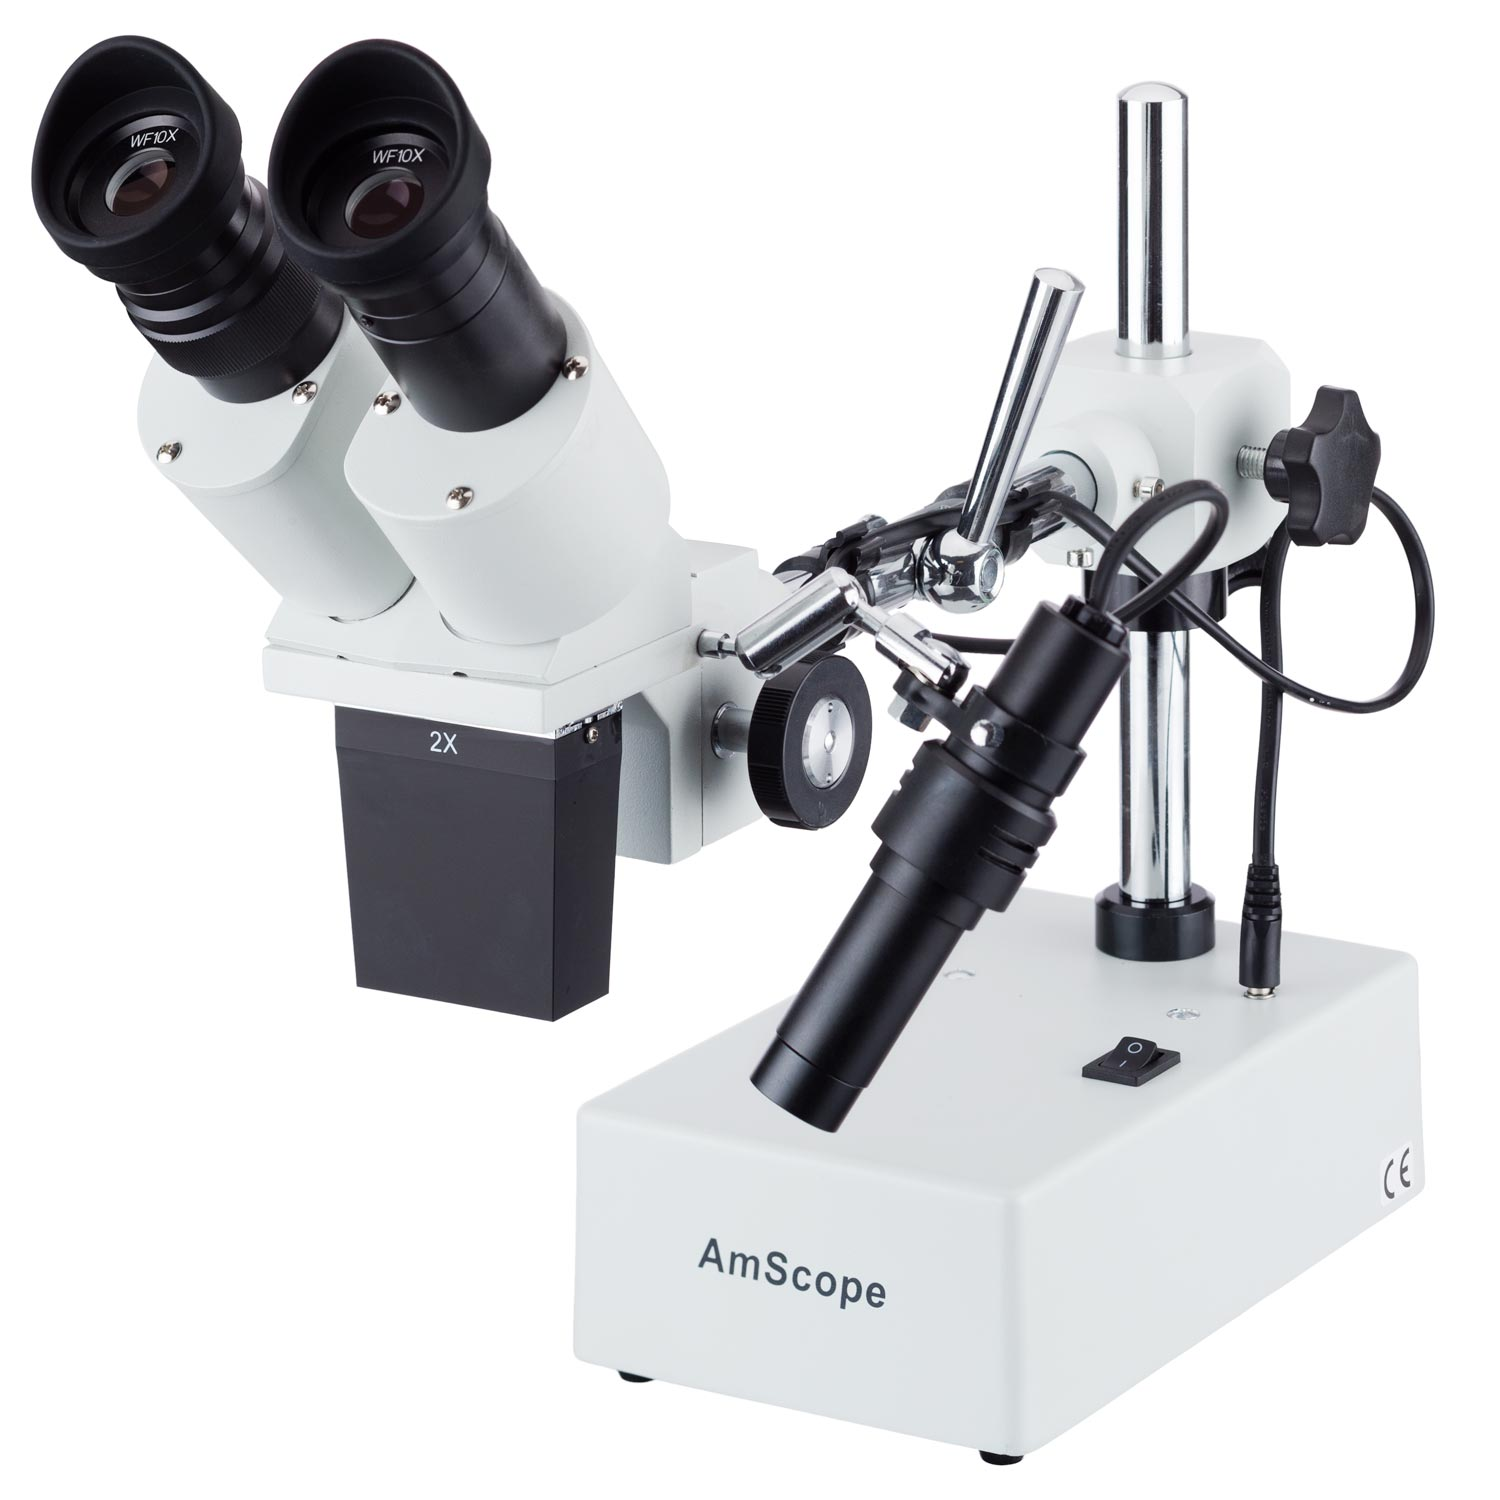 AmScope 20X & 40X Widefield Stereo Microscope with Boom Arm Stand and Incident Light by United Scope